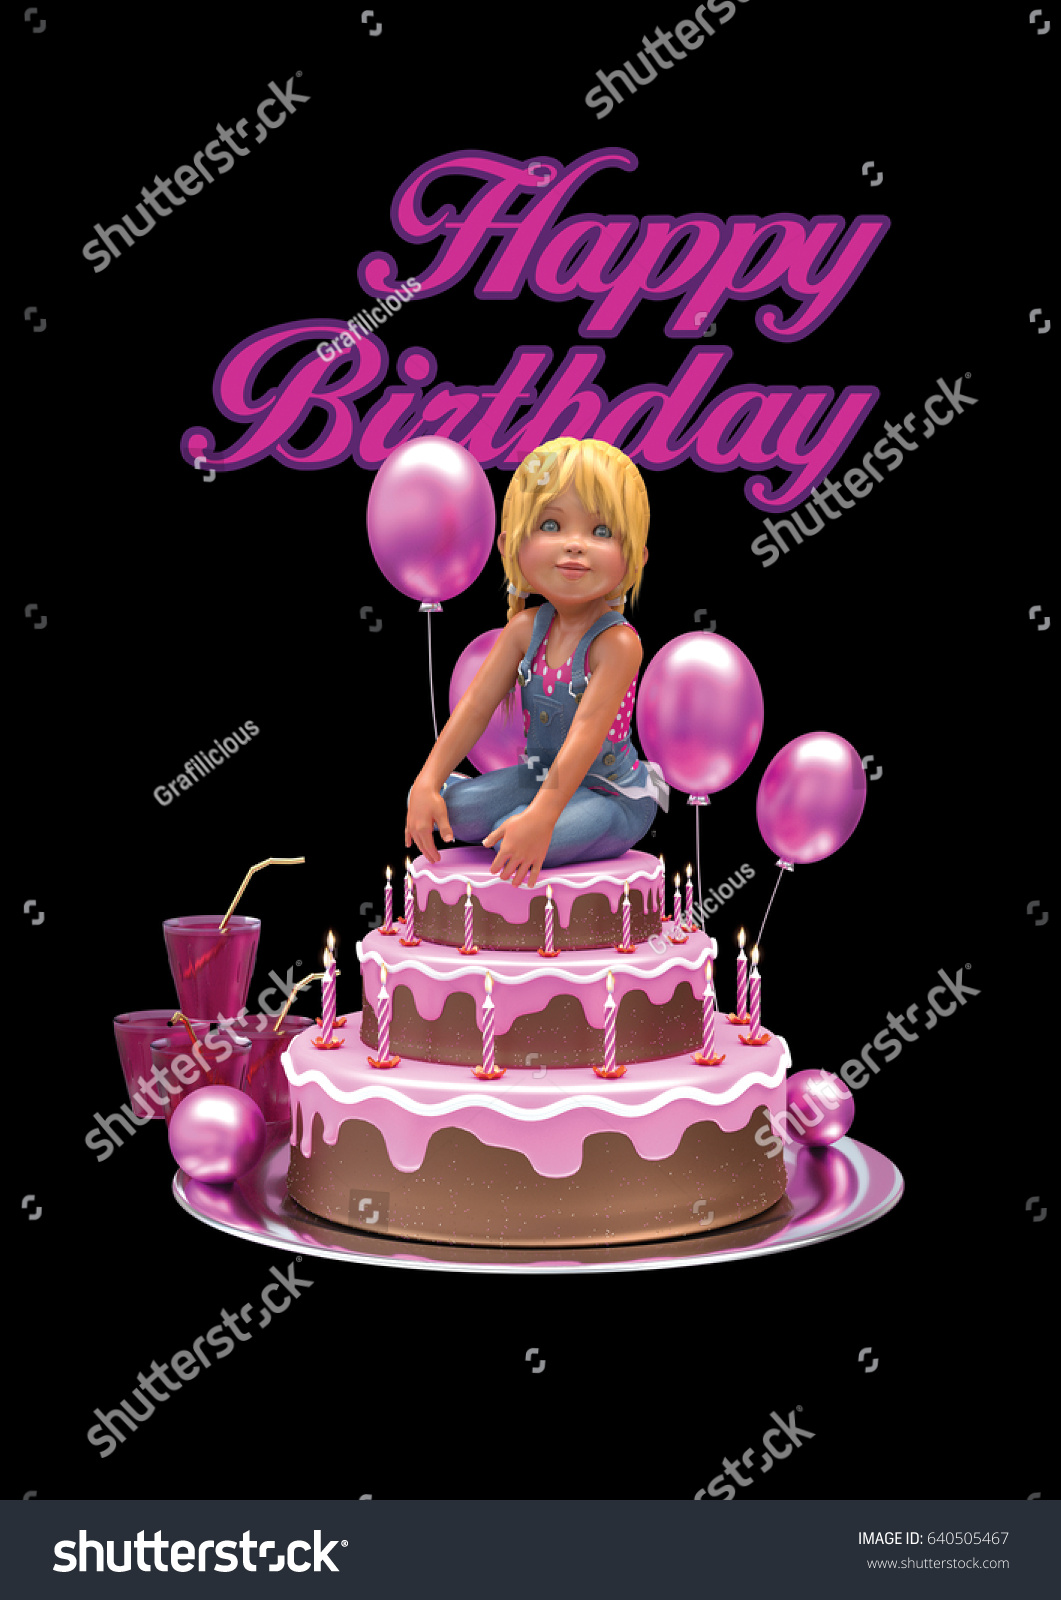 Happy Birthday 3 D Rendering Artwork Cake Stock Illustration